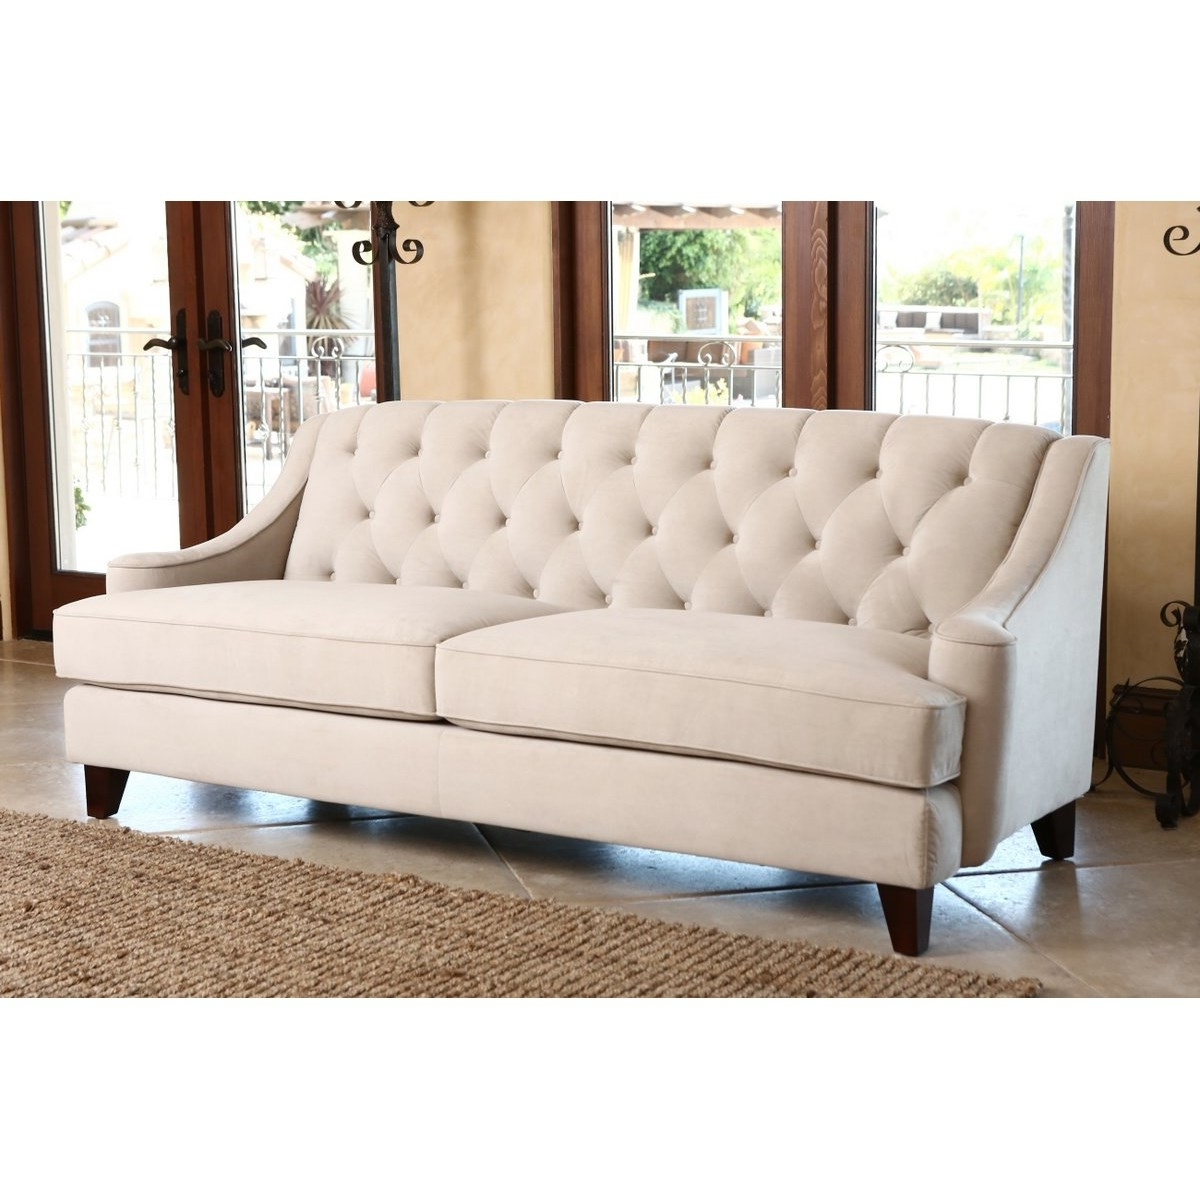 Furniture : Kijiji Sofa On Sale Oxford Tufted Sectional Sofa In Favorite Quad Cities Sectional Sofas (View 7 of 15)